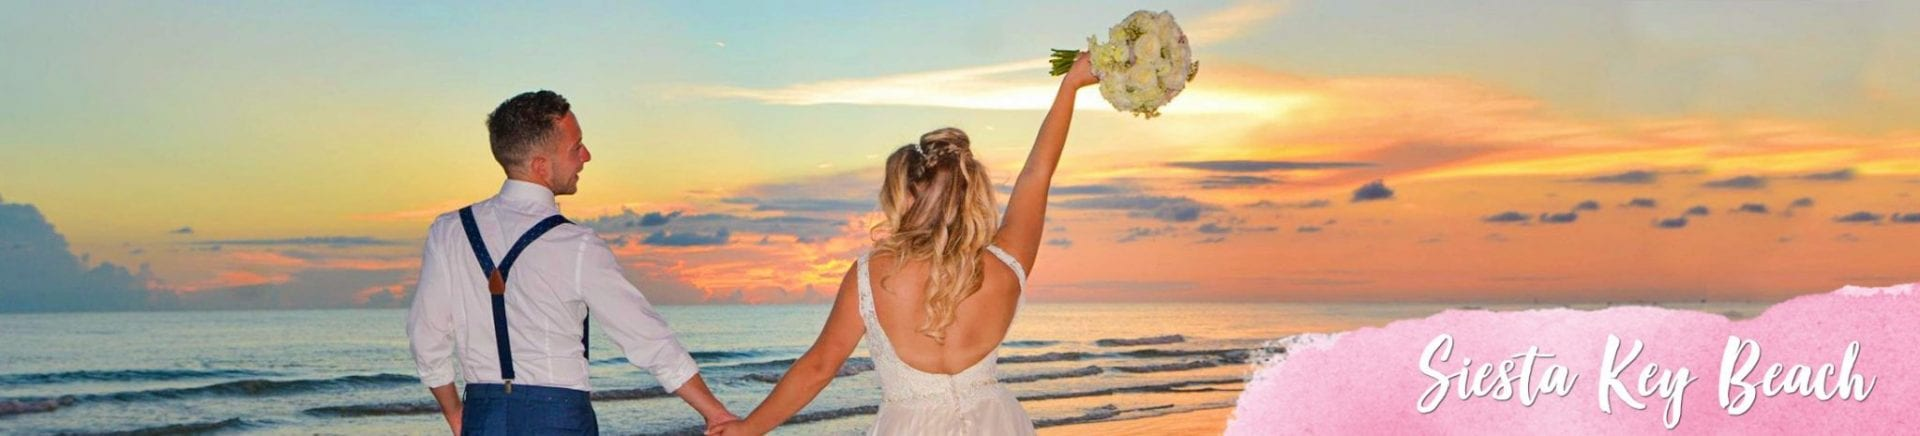 Siesta Key Beach Weddings